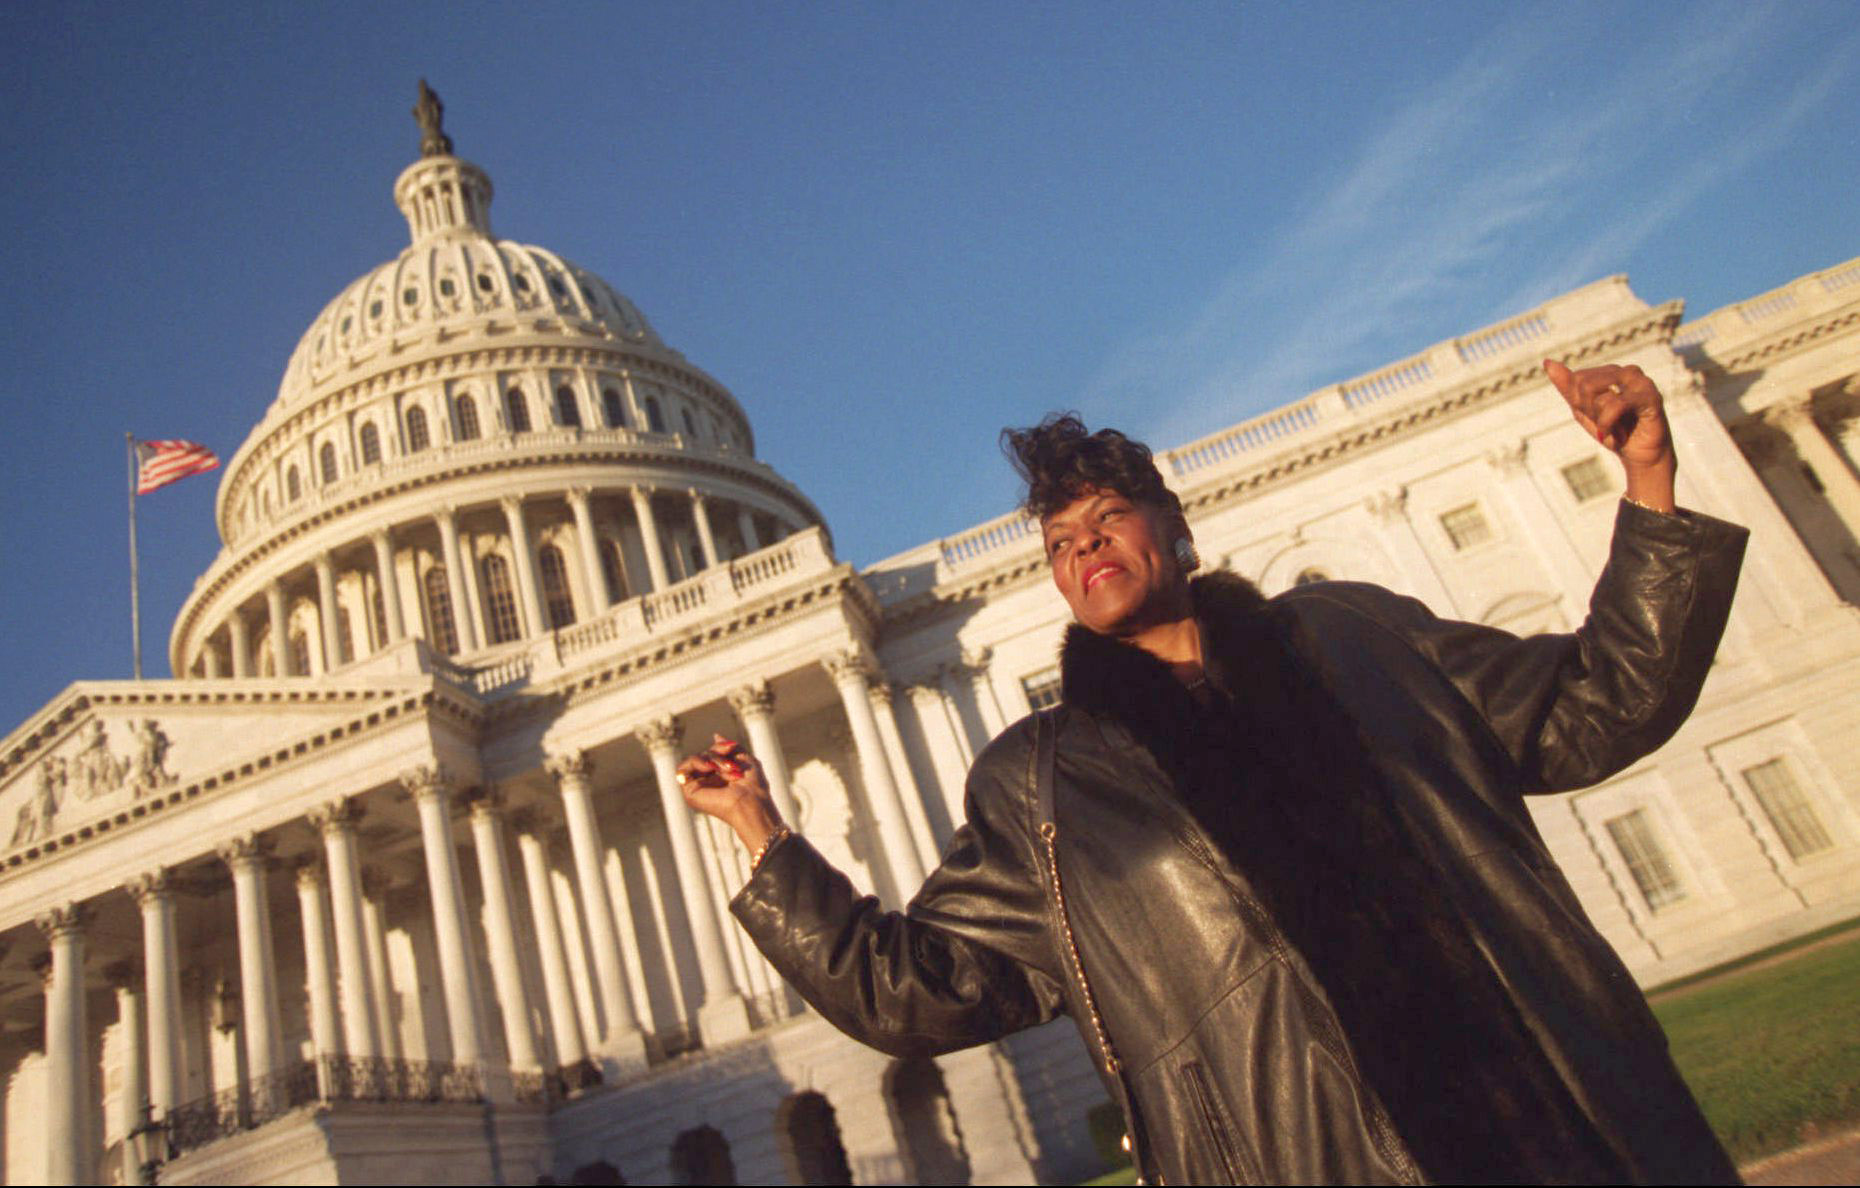 """Congresswoman Carolyn Cheeks Kilpatrick raises her arms in triumph on Jan. 6, 1997 on her way to work in Washington DC. """"This is it, this is my new office,"""" she exclaimed. """"We made it.""""  Courtesy of the Detroit Free Press."""